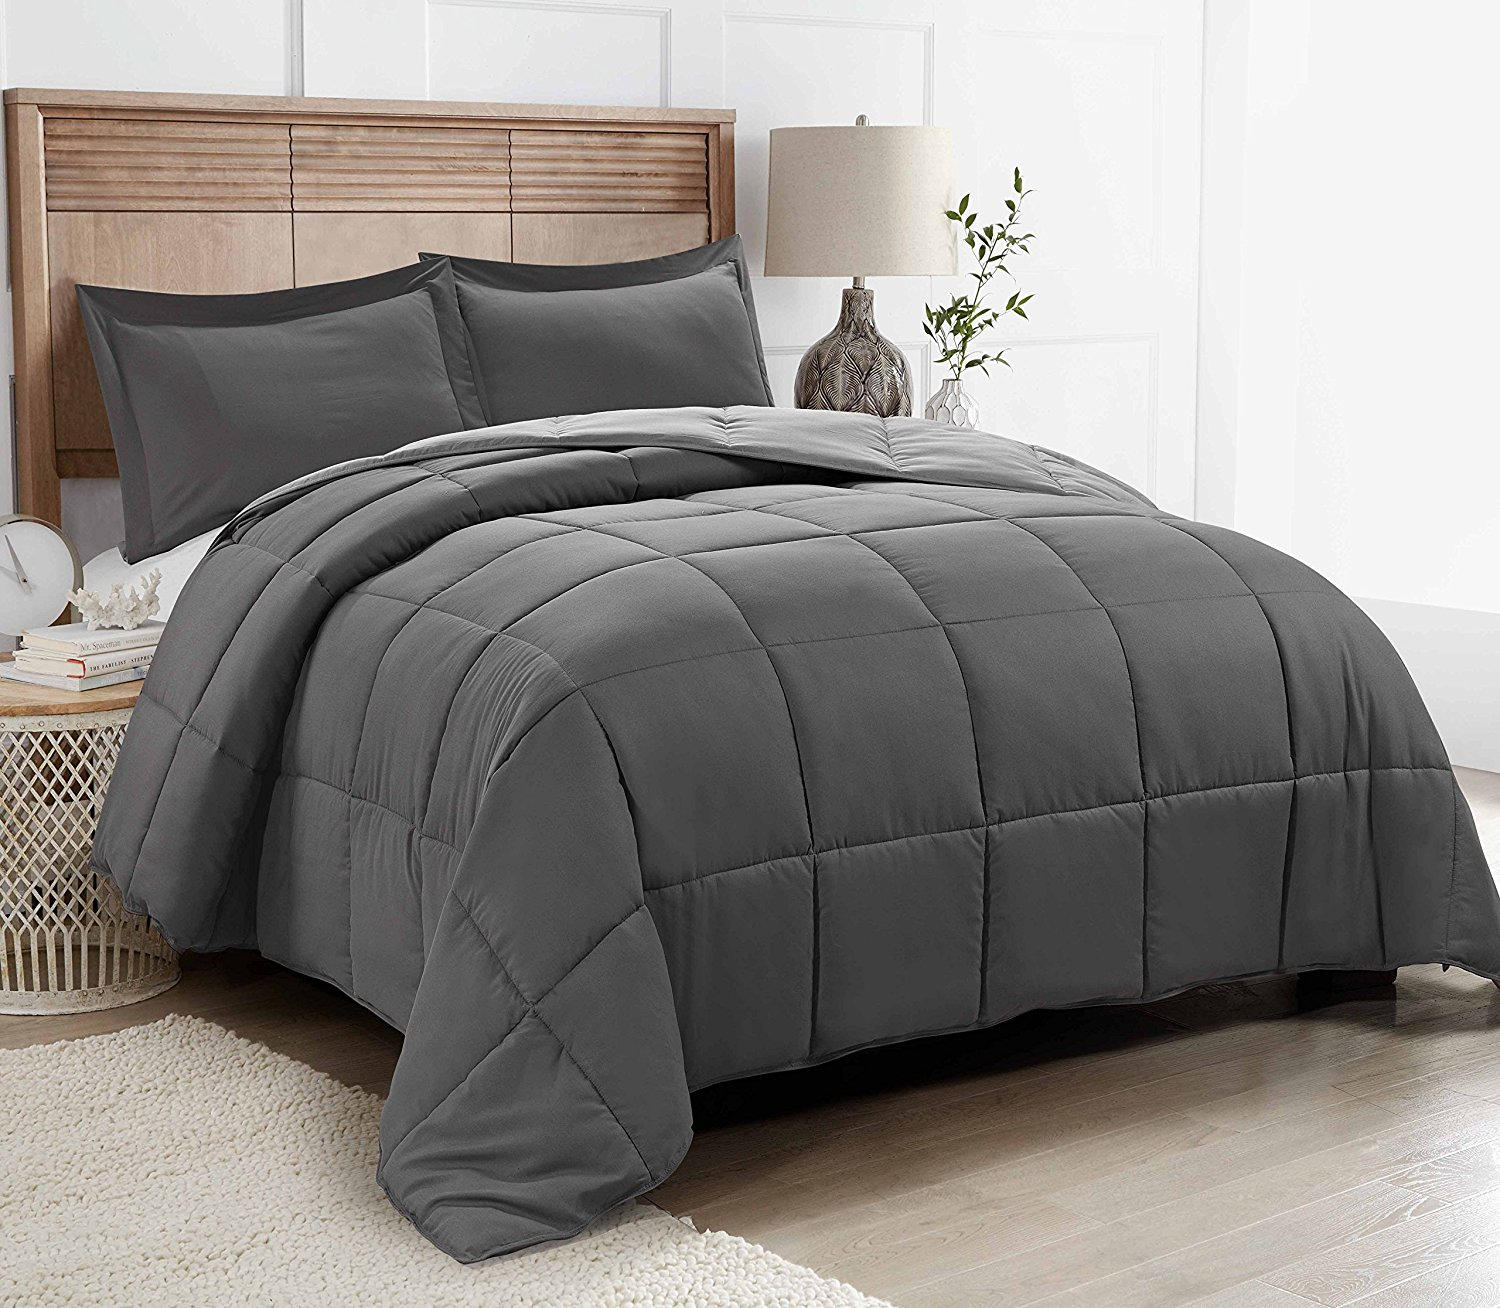 Duvet And Comforter Sets All Season Down Alternative Comforter Set 2pc Box Stitched Reversible Comforter With One Sham Quilted Duvet Insert With Corner Tabs For Duvet